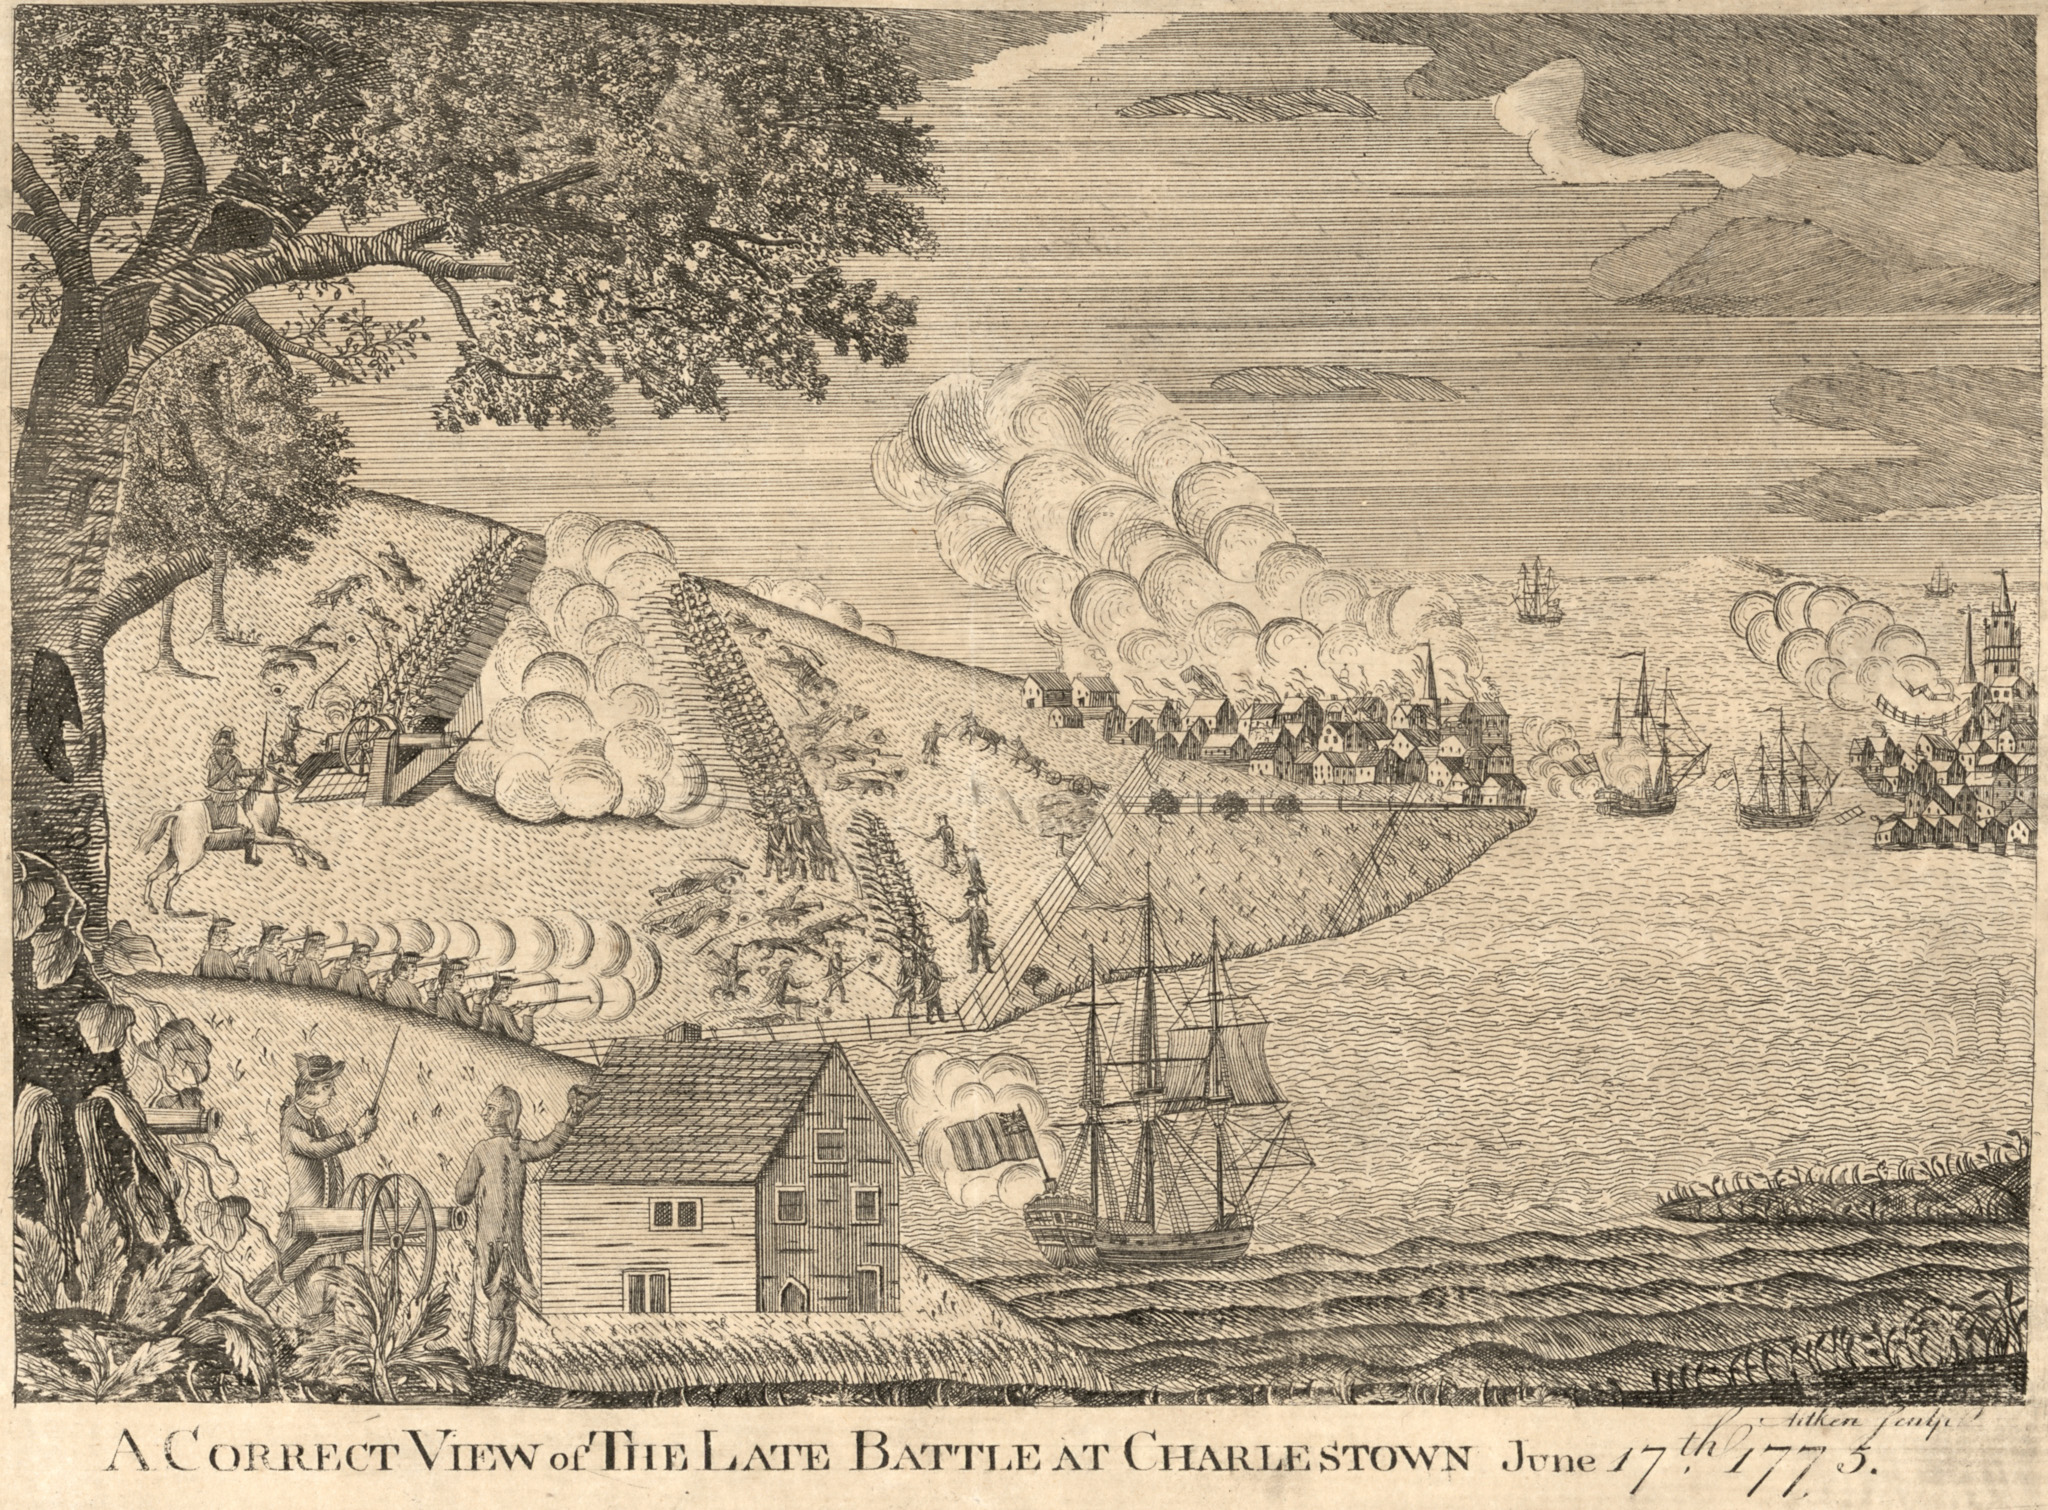 A correct view of the late battle at Charlestown by Aitken, 1775